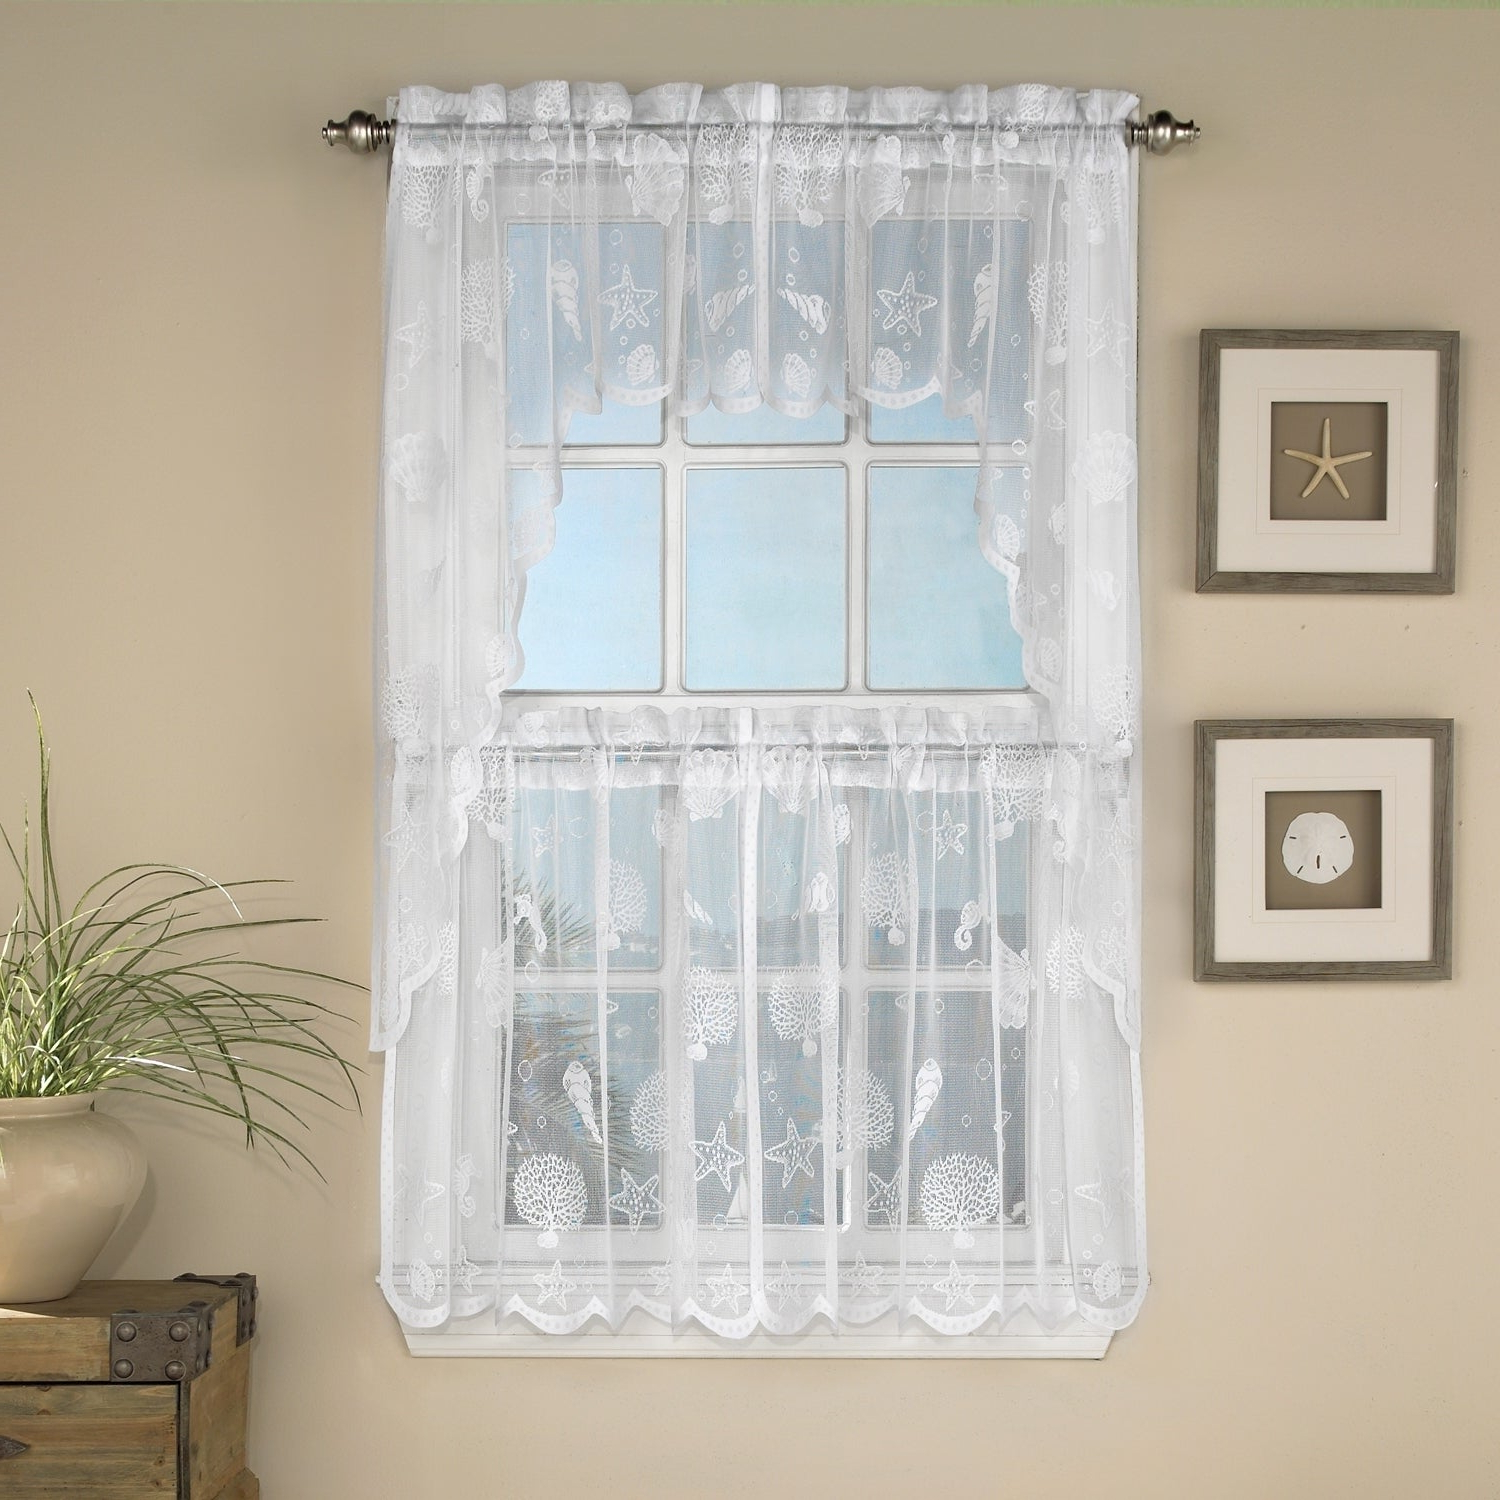 Ivory Knit Lace Bird Motif Window Curtain Inside Favorite Marine Life Motif Knitted Lace Window Curtain Pieces (View 6 of 20)